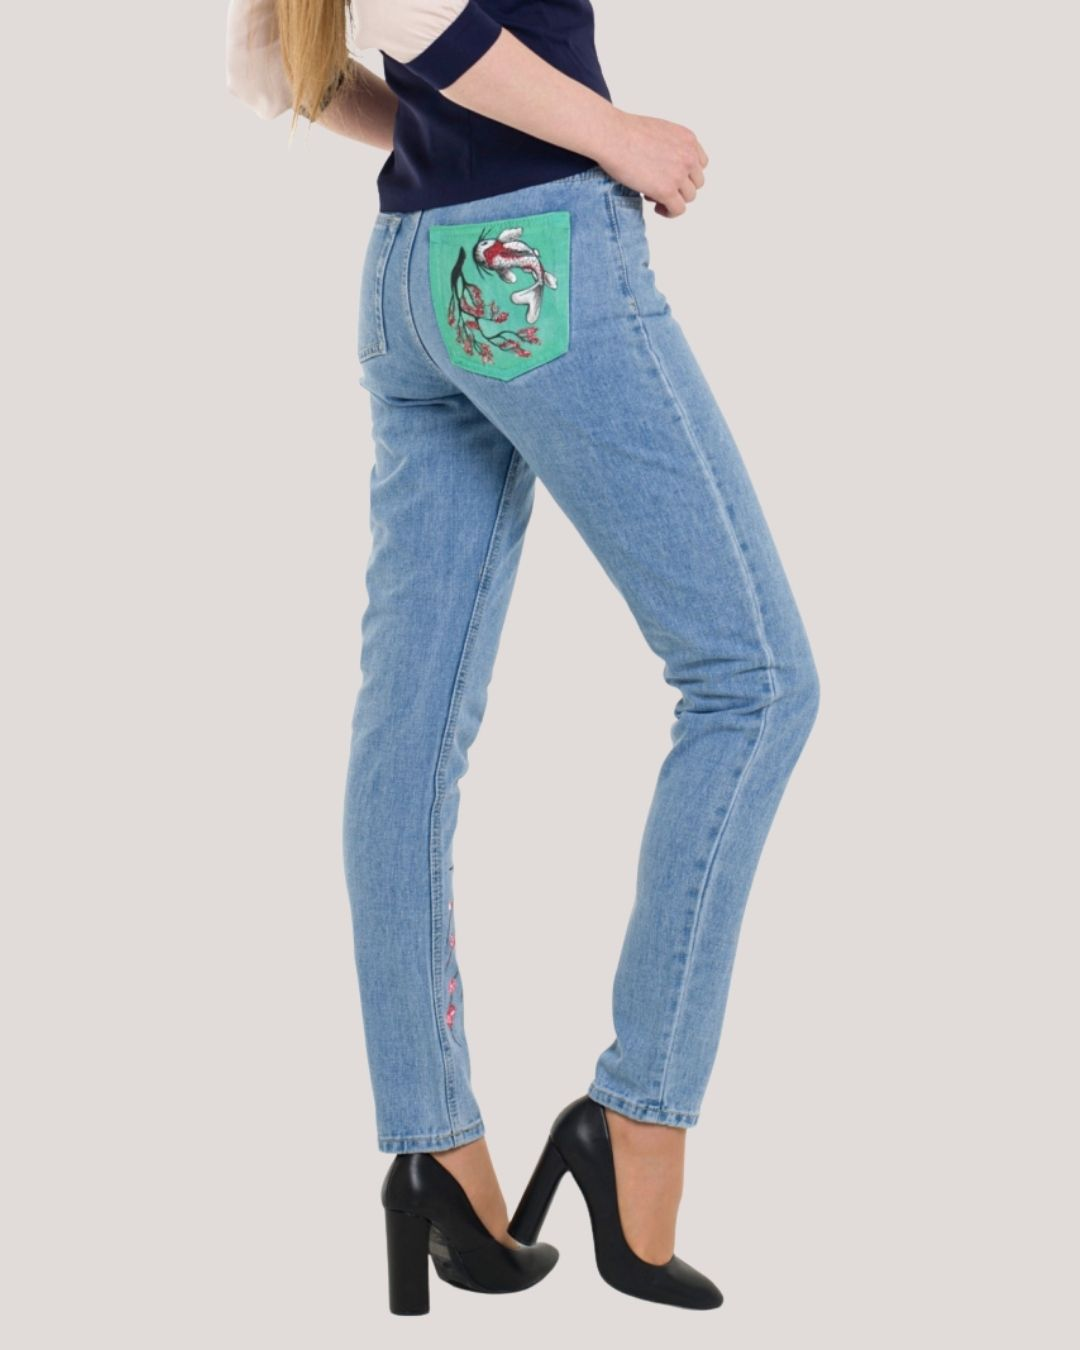 Women's Fit Mom Blue Jeans With Hand Painted Pocket